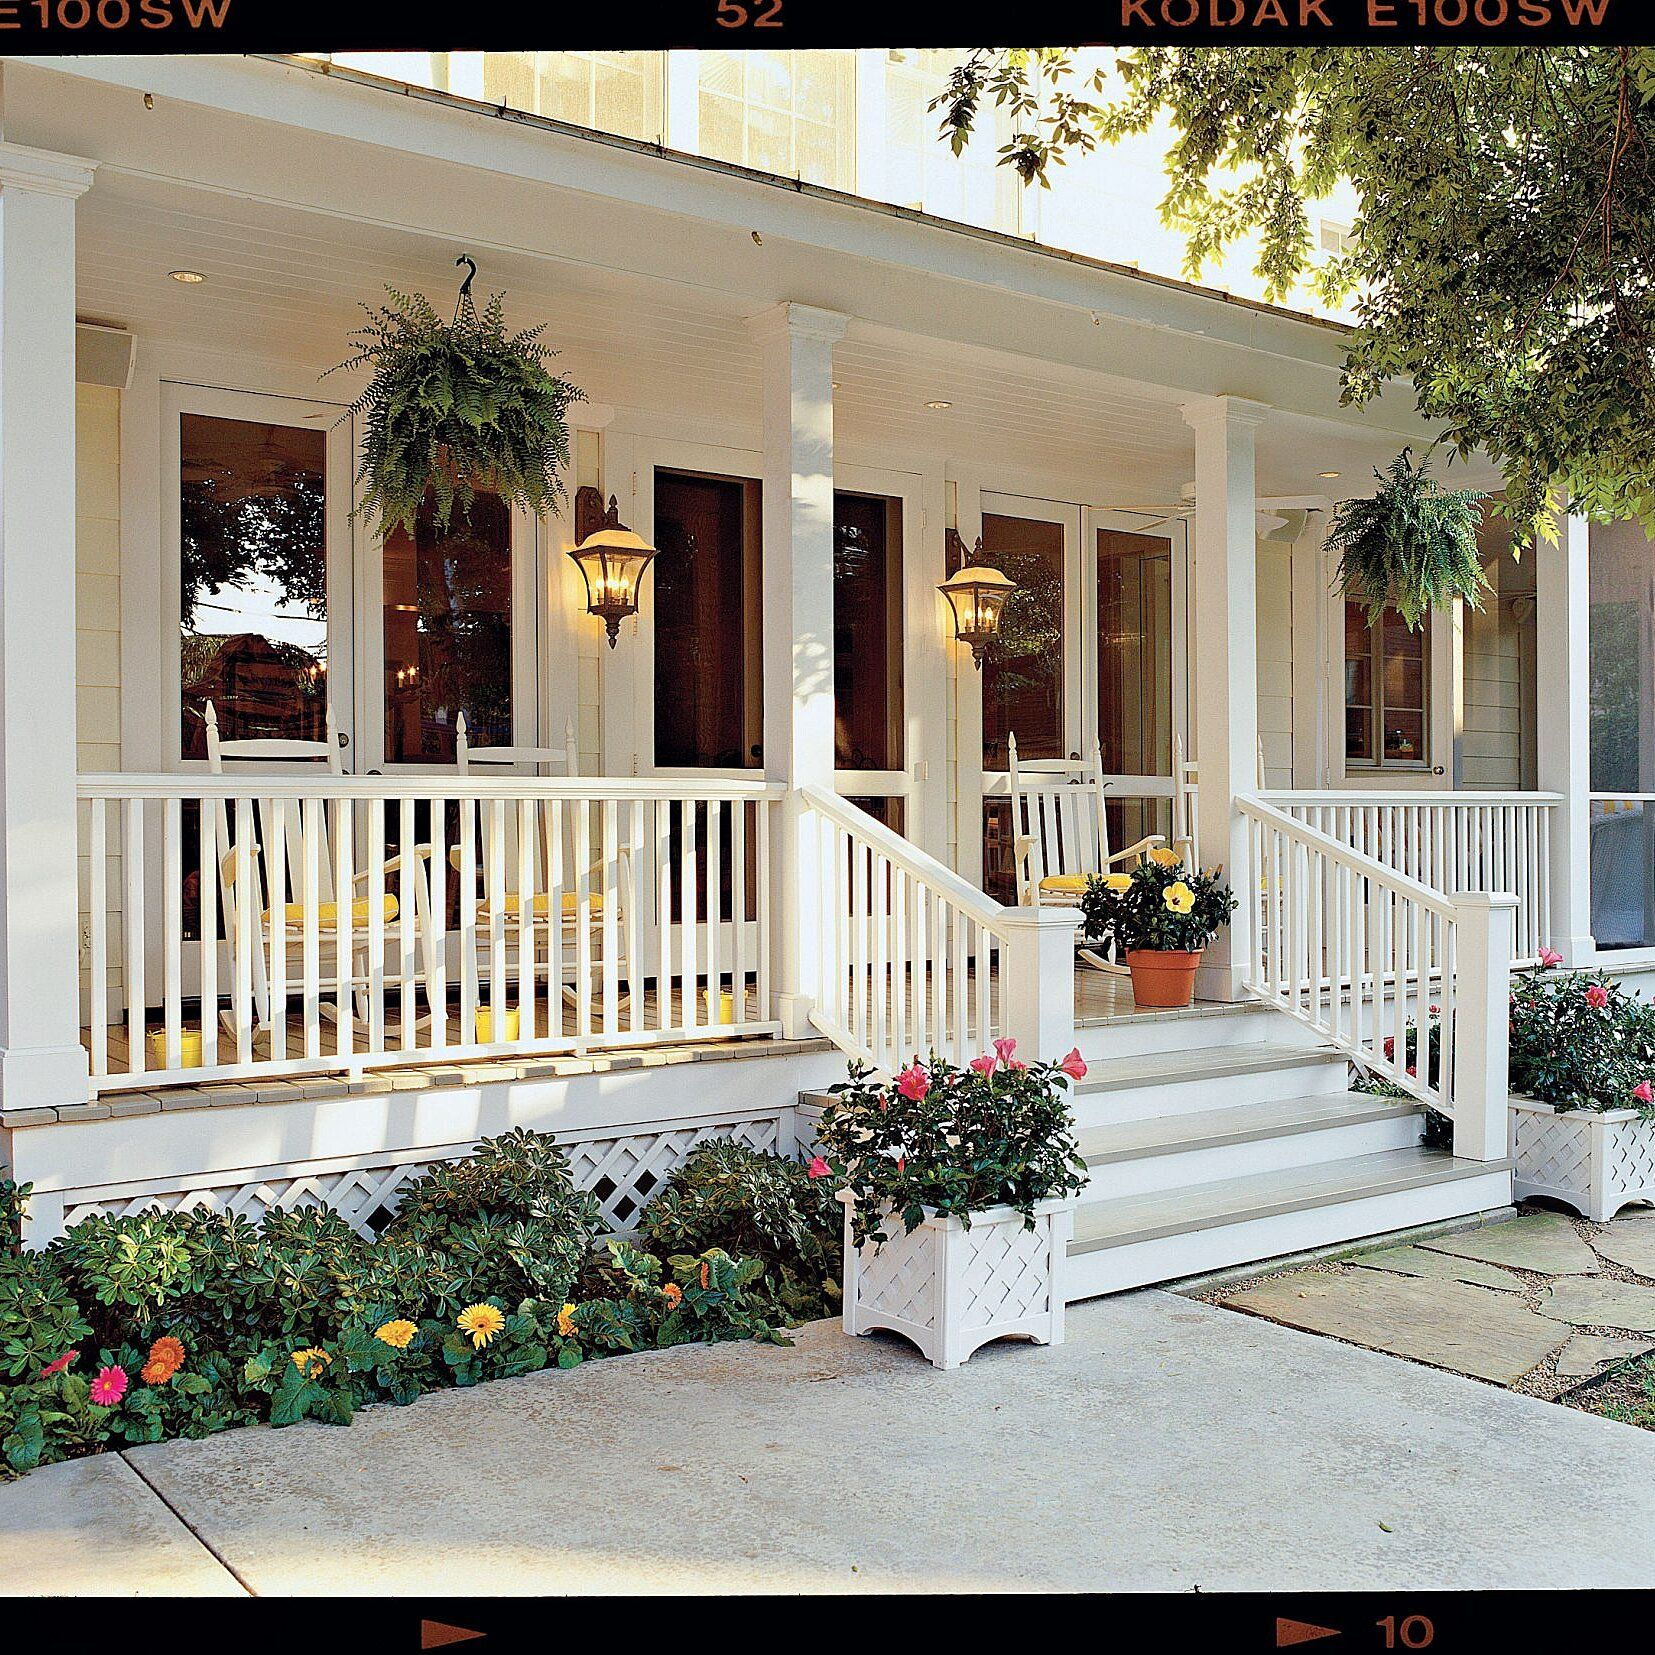 Home Design Ideas Front: 125 Container Gardening Ideas In 2020